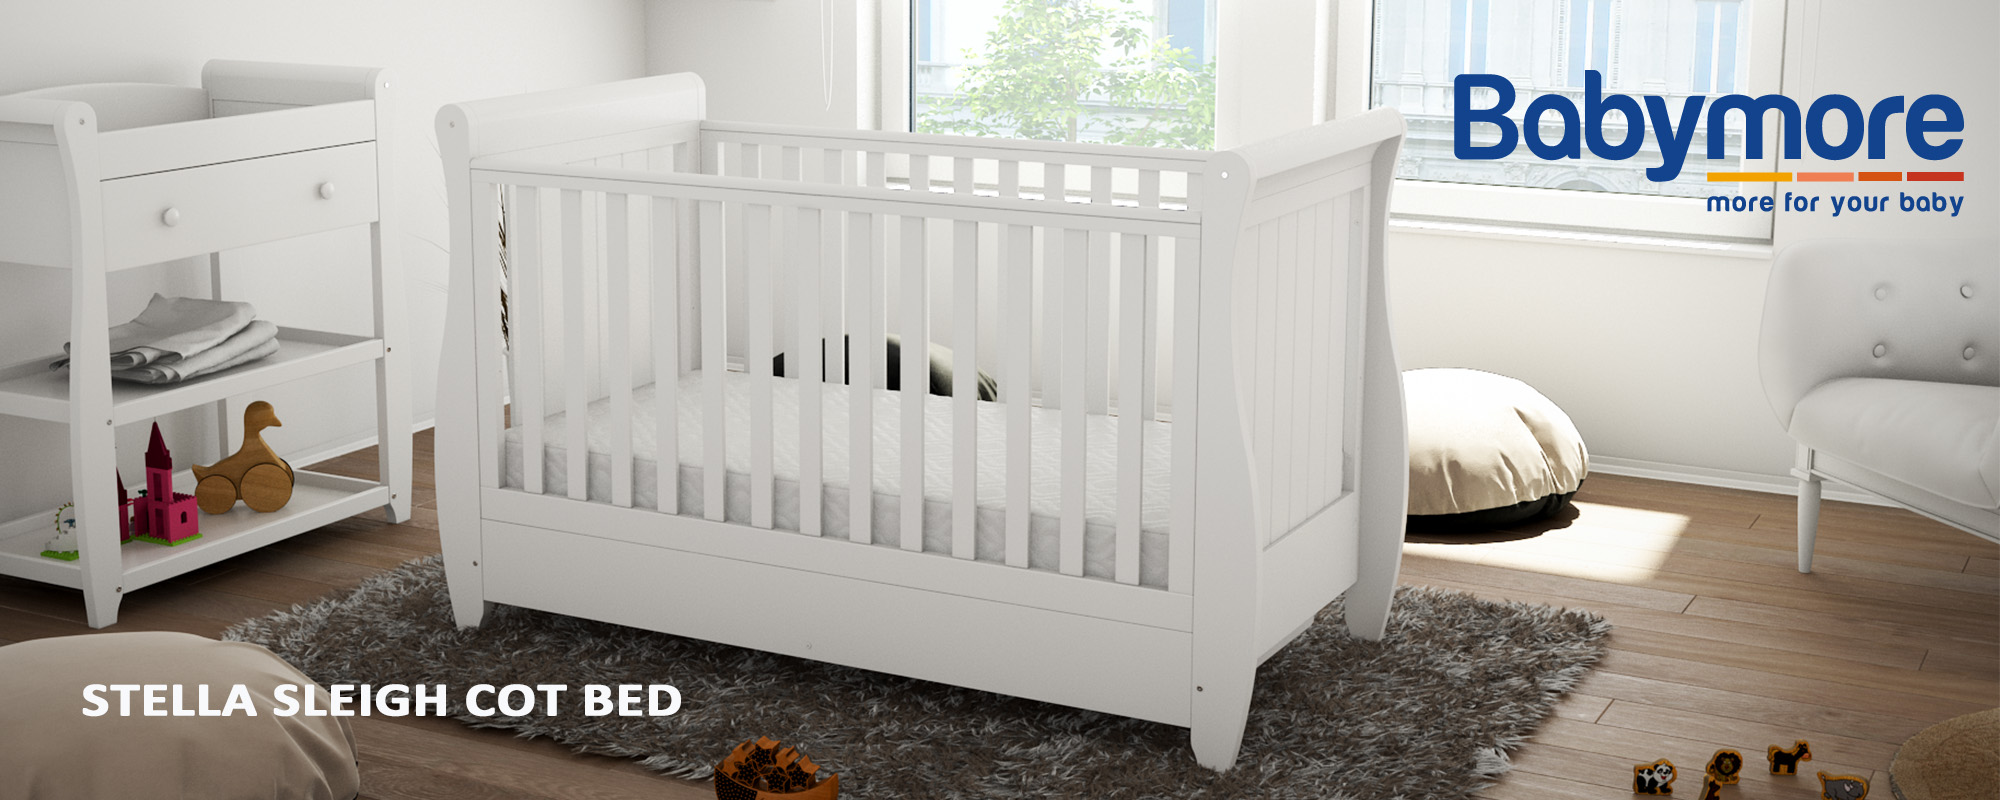 Babymore - Stella Cot Bed